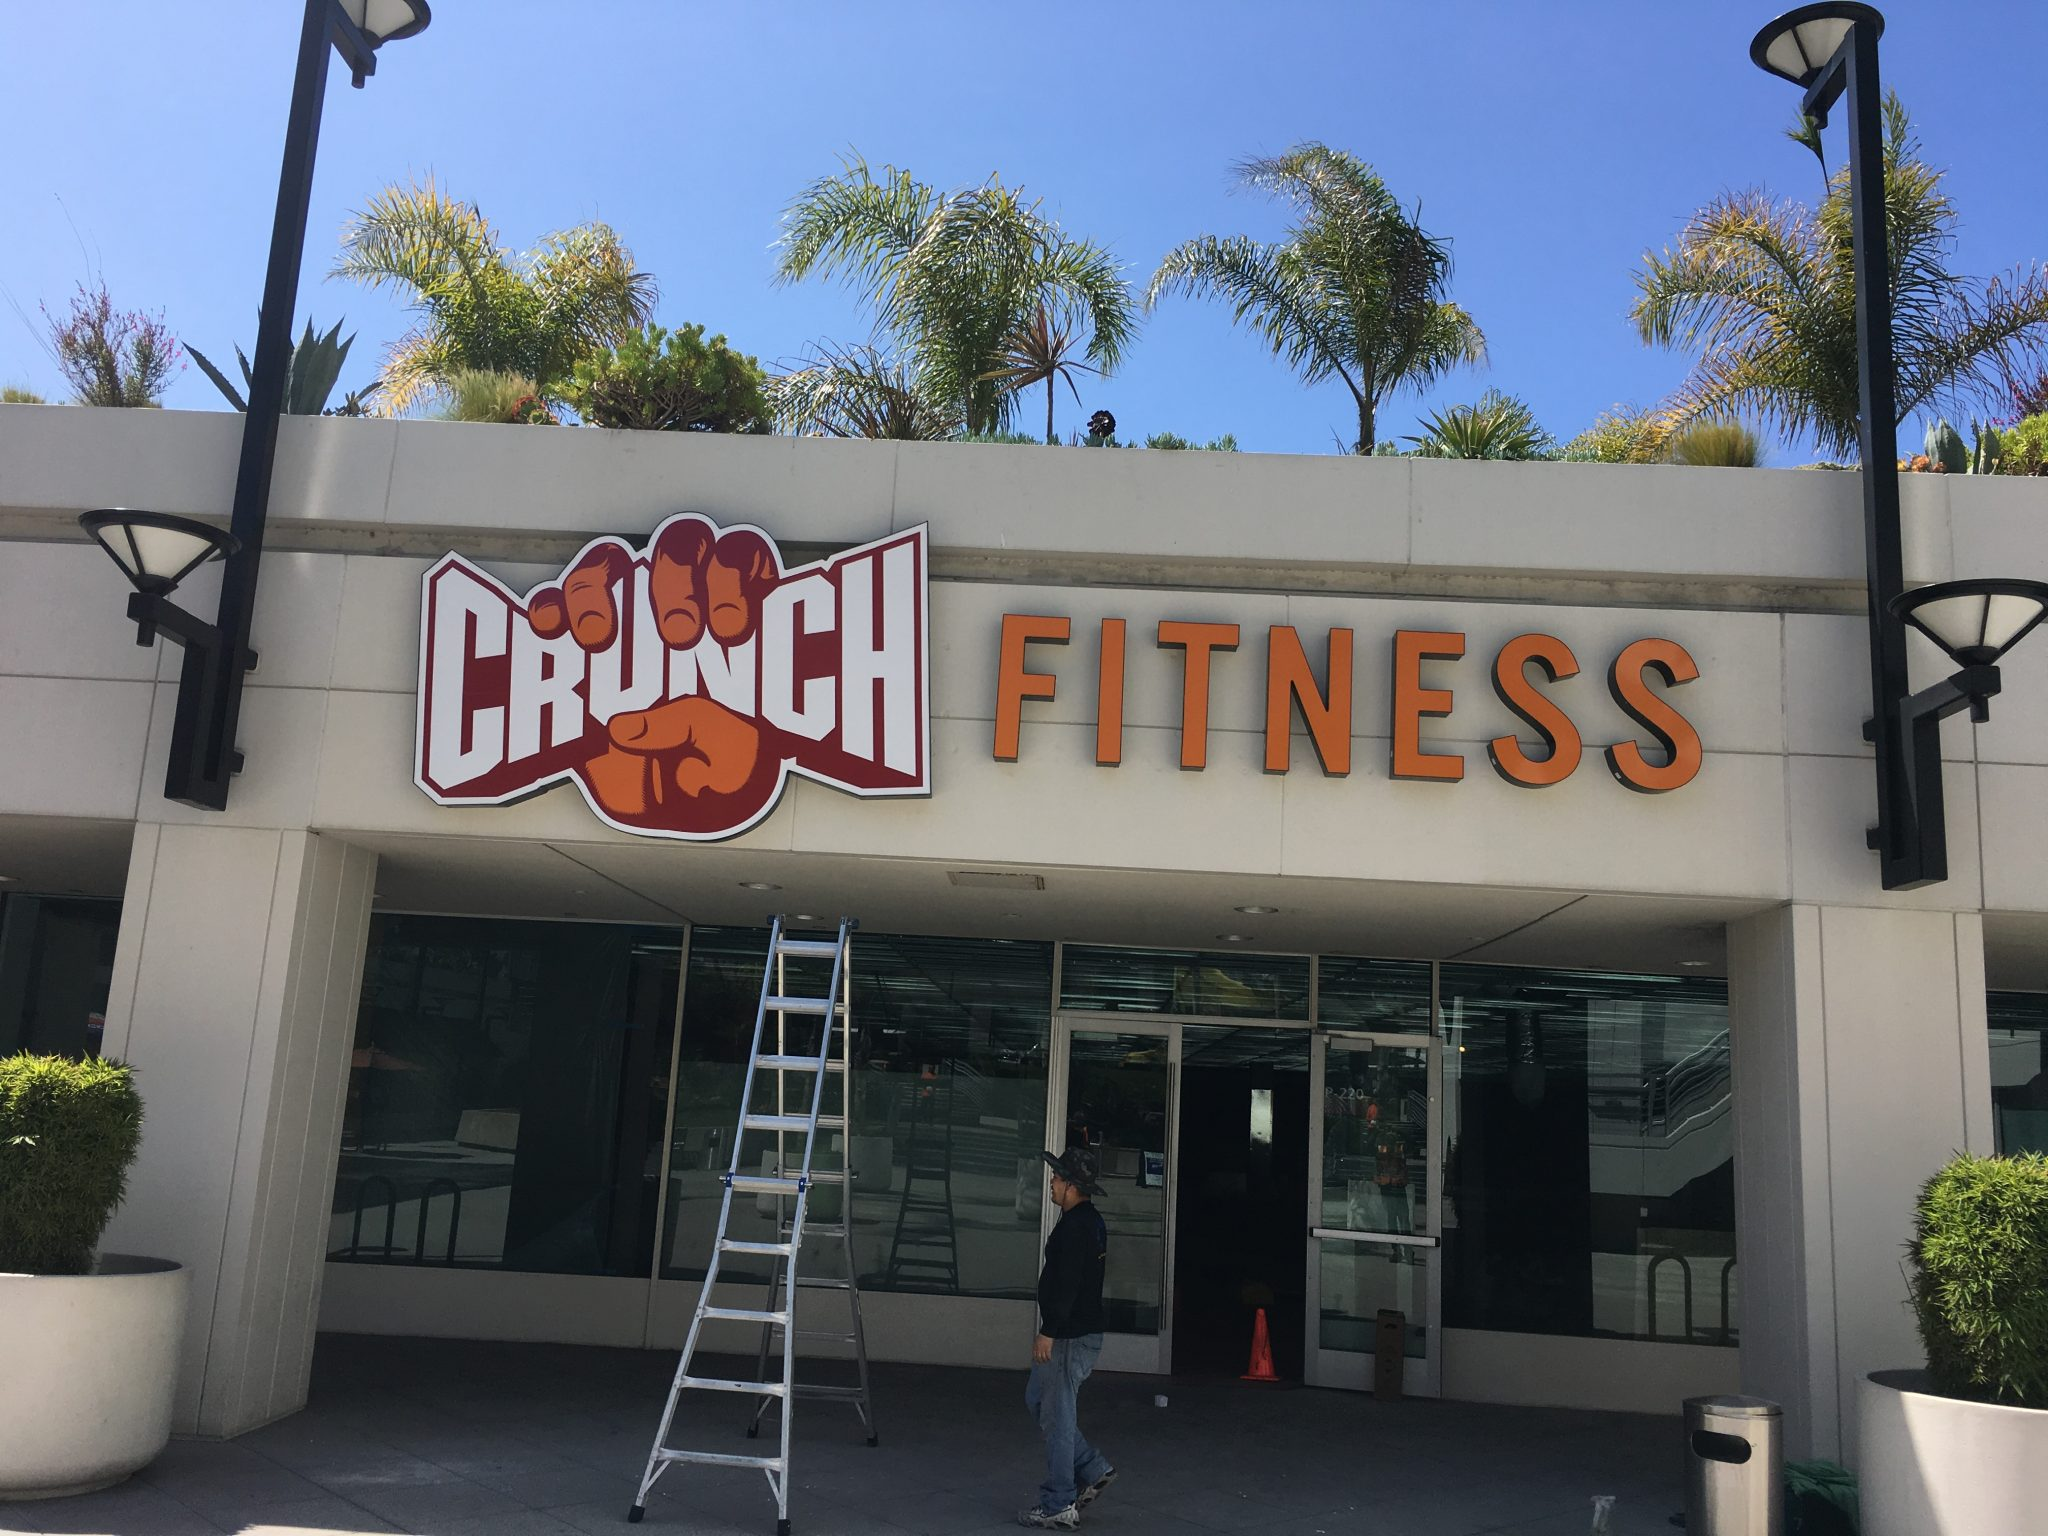 custom lightbox, custom channel letters, custom building sign, channel letters, building signs, storefront signs, fitness signs, gym signs, sign makers, sign companies, long beach, gym sign, sign package, sign maker, sign company, crunch fitness, crunch